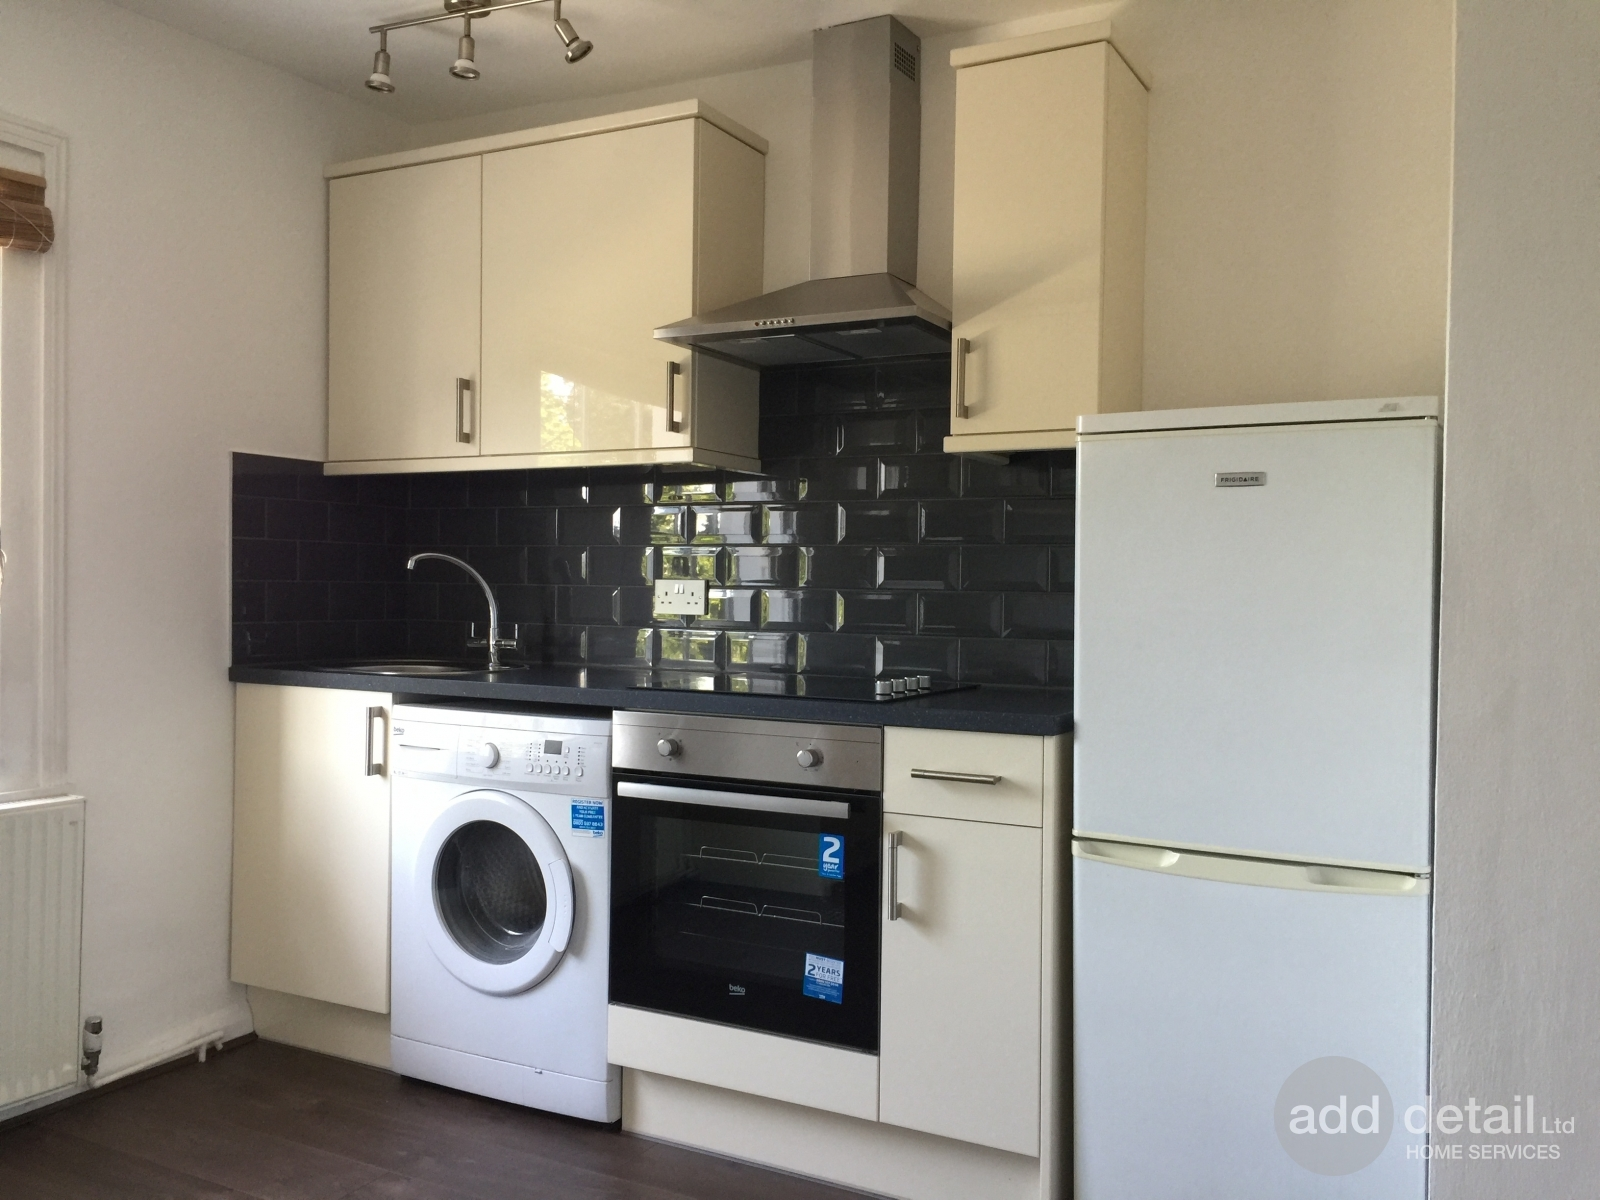 Kitchen upgrade in Camden - London - Central London - London